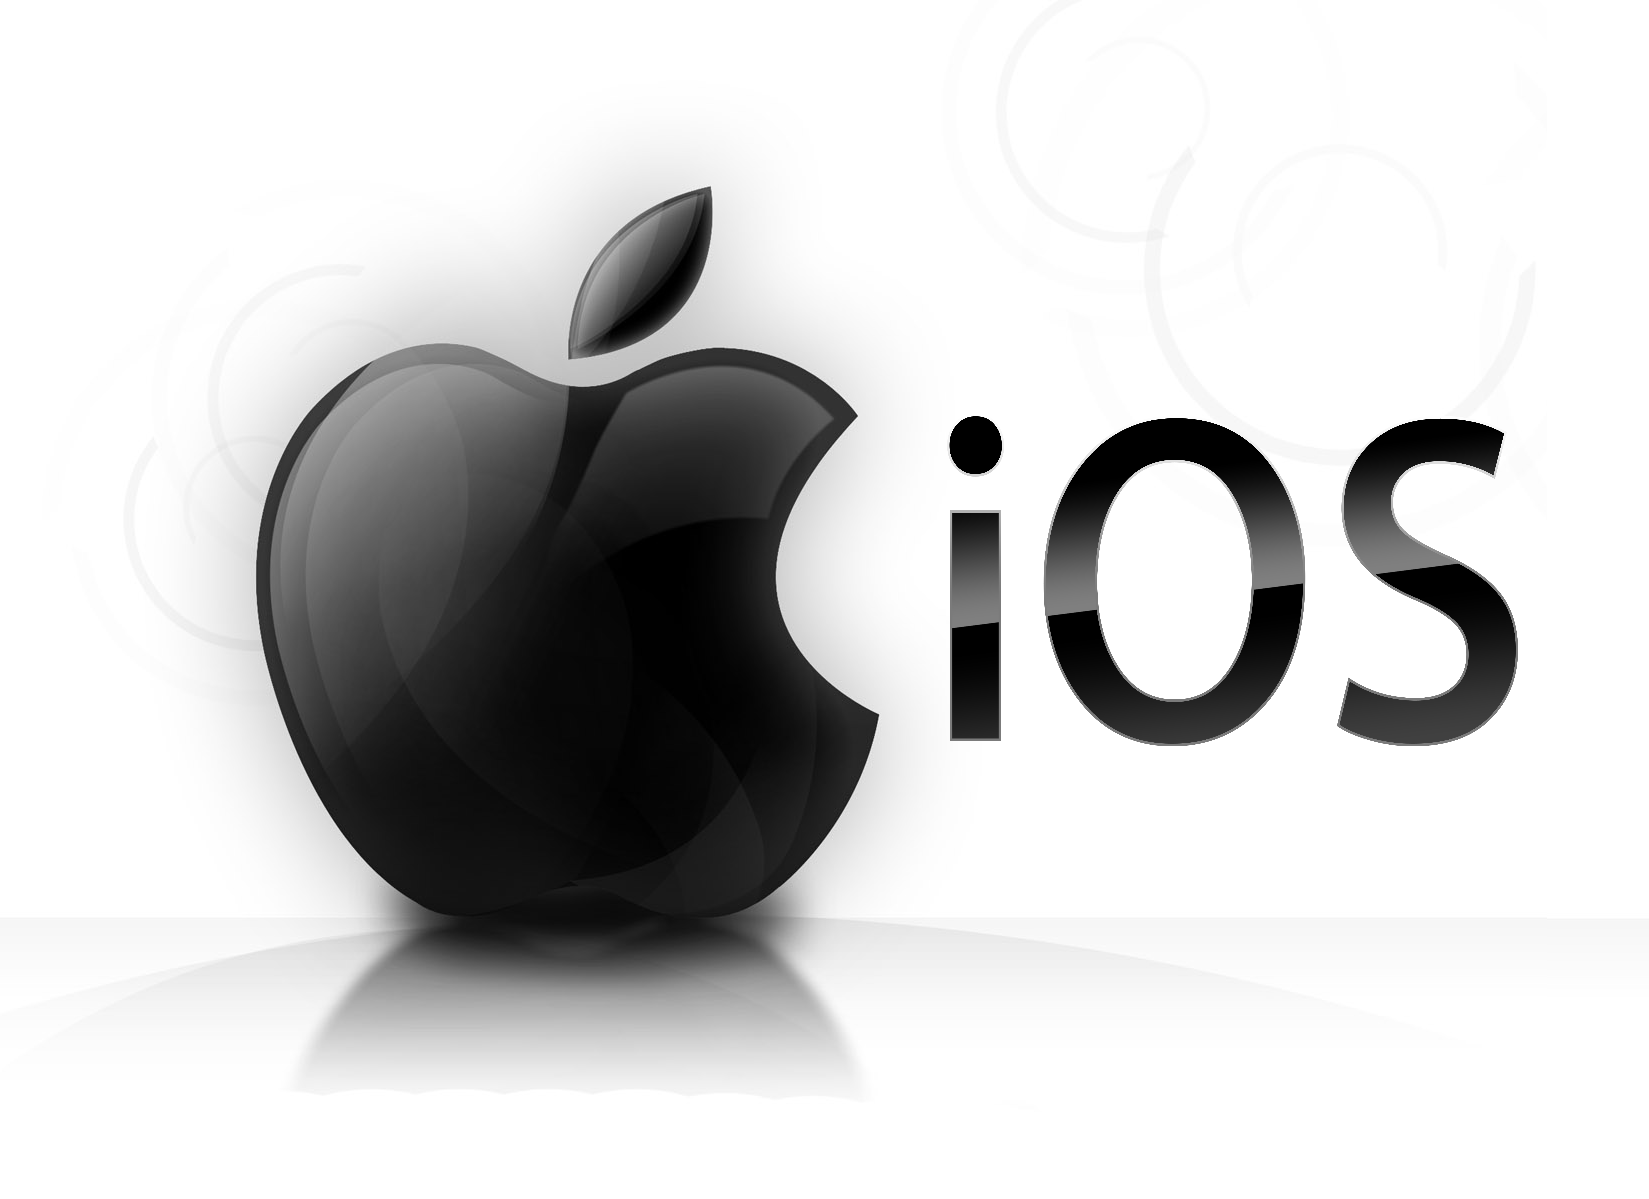 apple ios logo png transparent apple ios logo png images apple vector png logo vector logo apple store